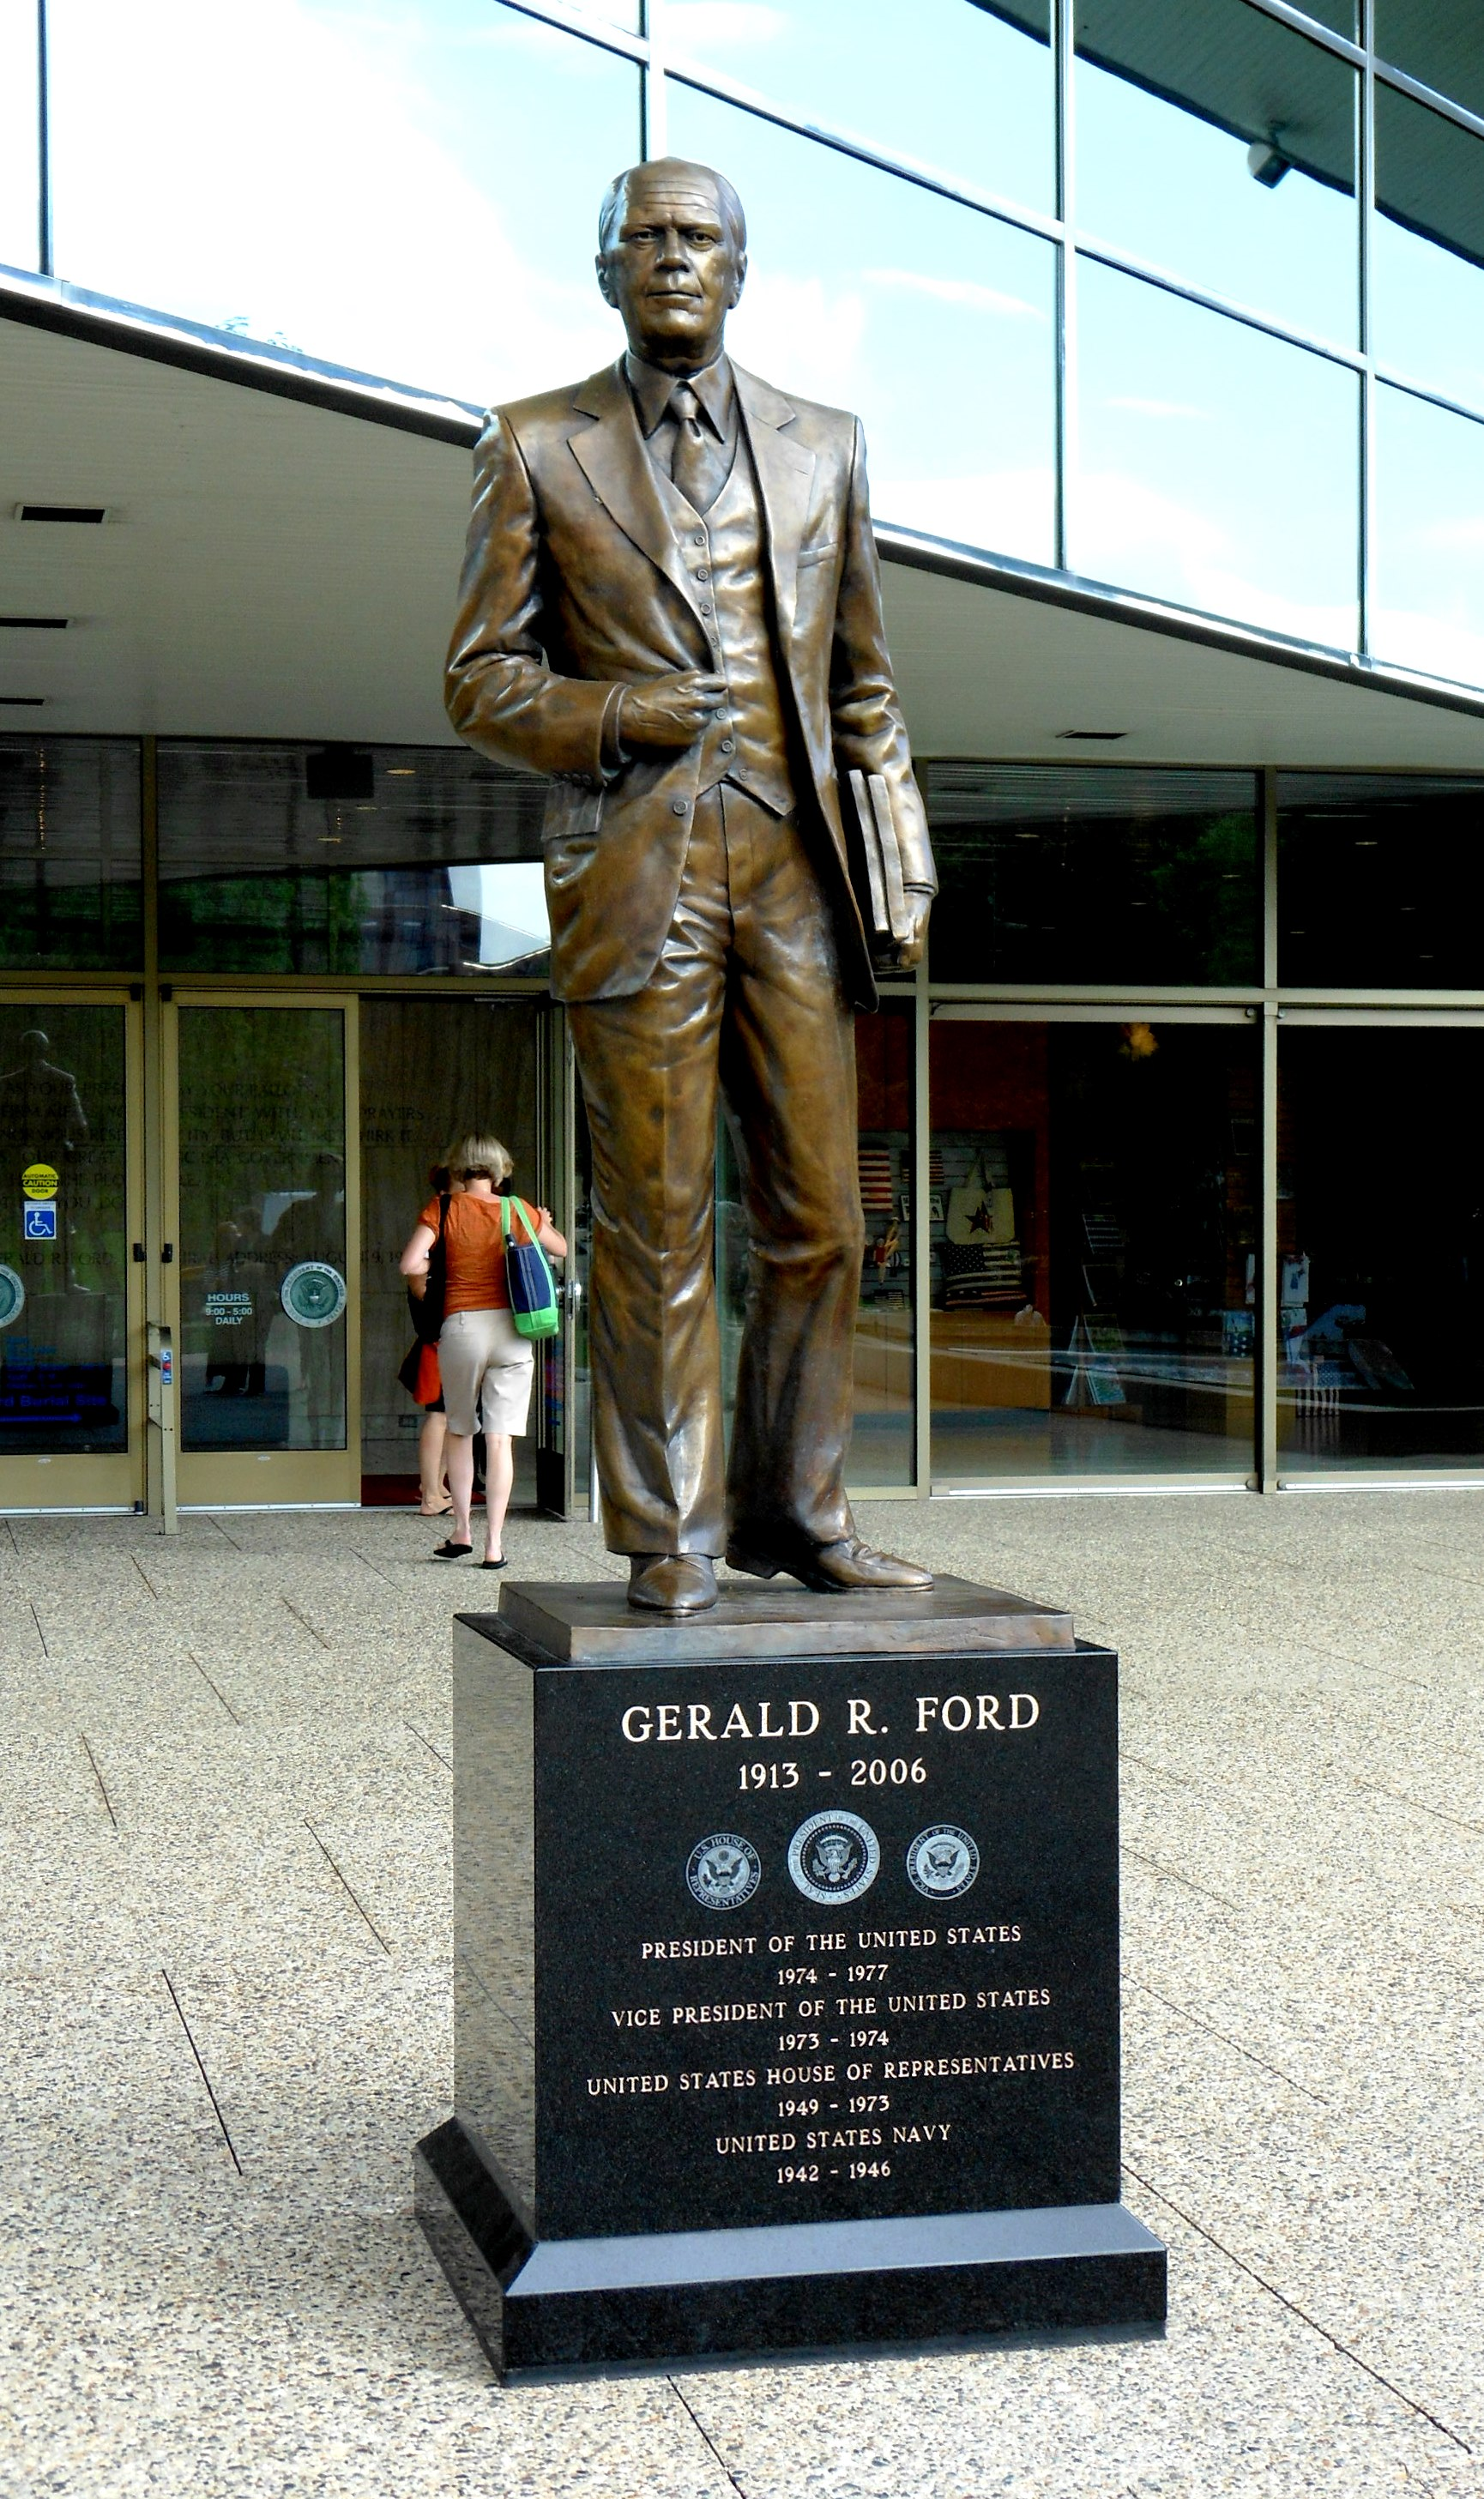 Gerald R Ford Presidential Museum Schipperhaven